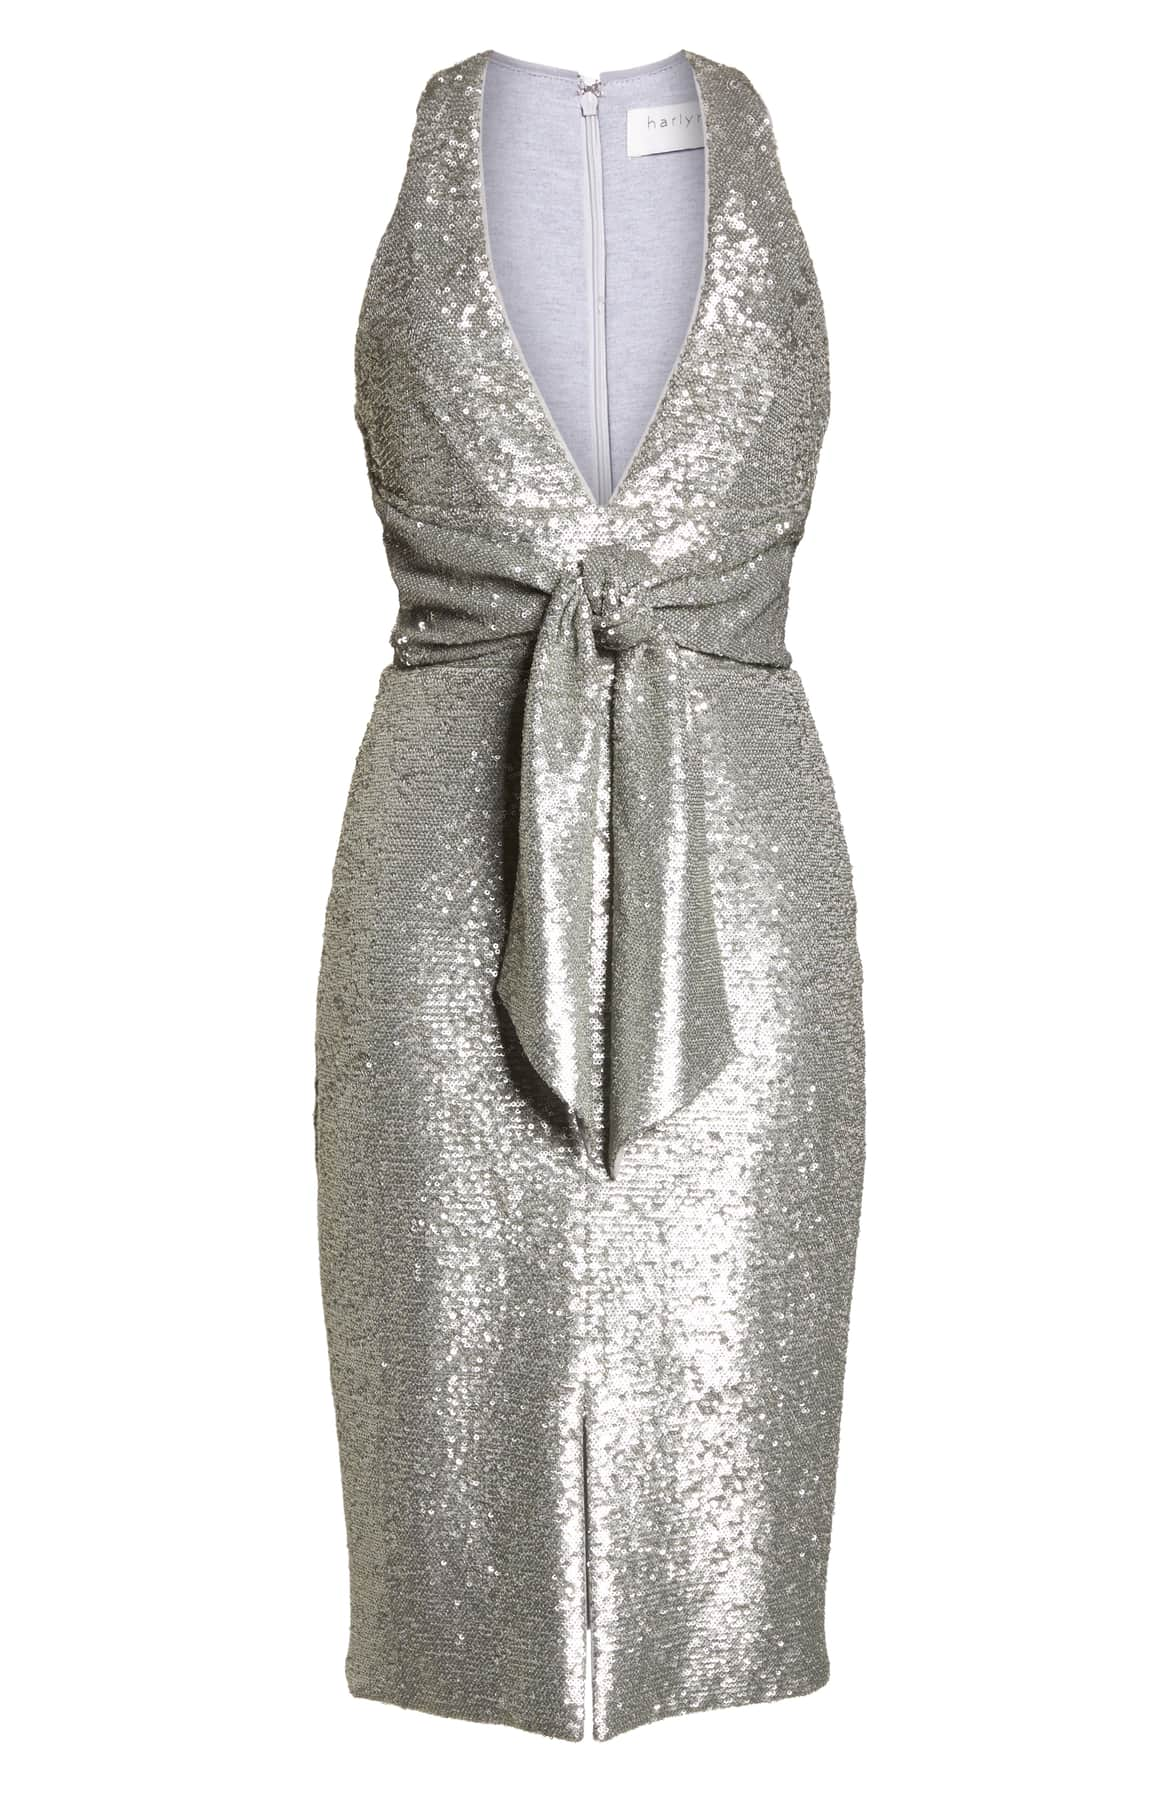 <p>Allover sequins sparkle and shine on a sheath embellished with a tonal tie at the waist and a sultry plunge neck. Sexy AF.{&amp;nbsp;} $178. (Image: Nordstrom){&amp;nbsp;}</p><p></p>